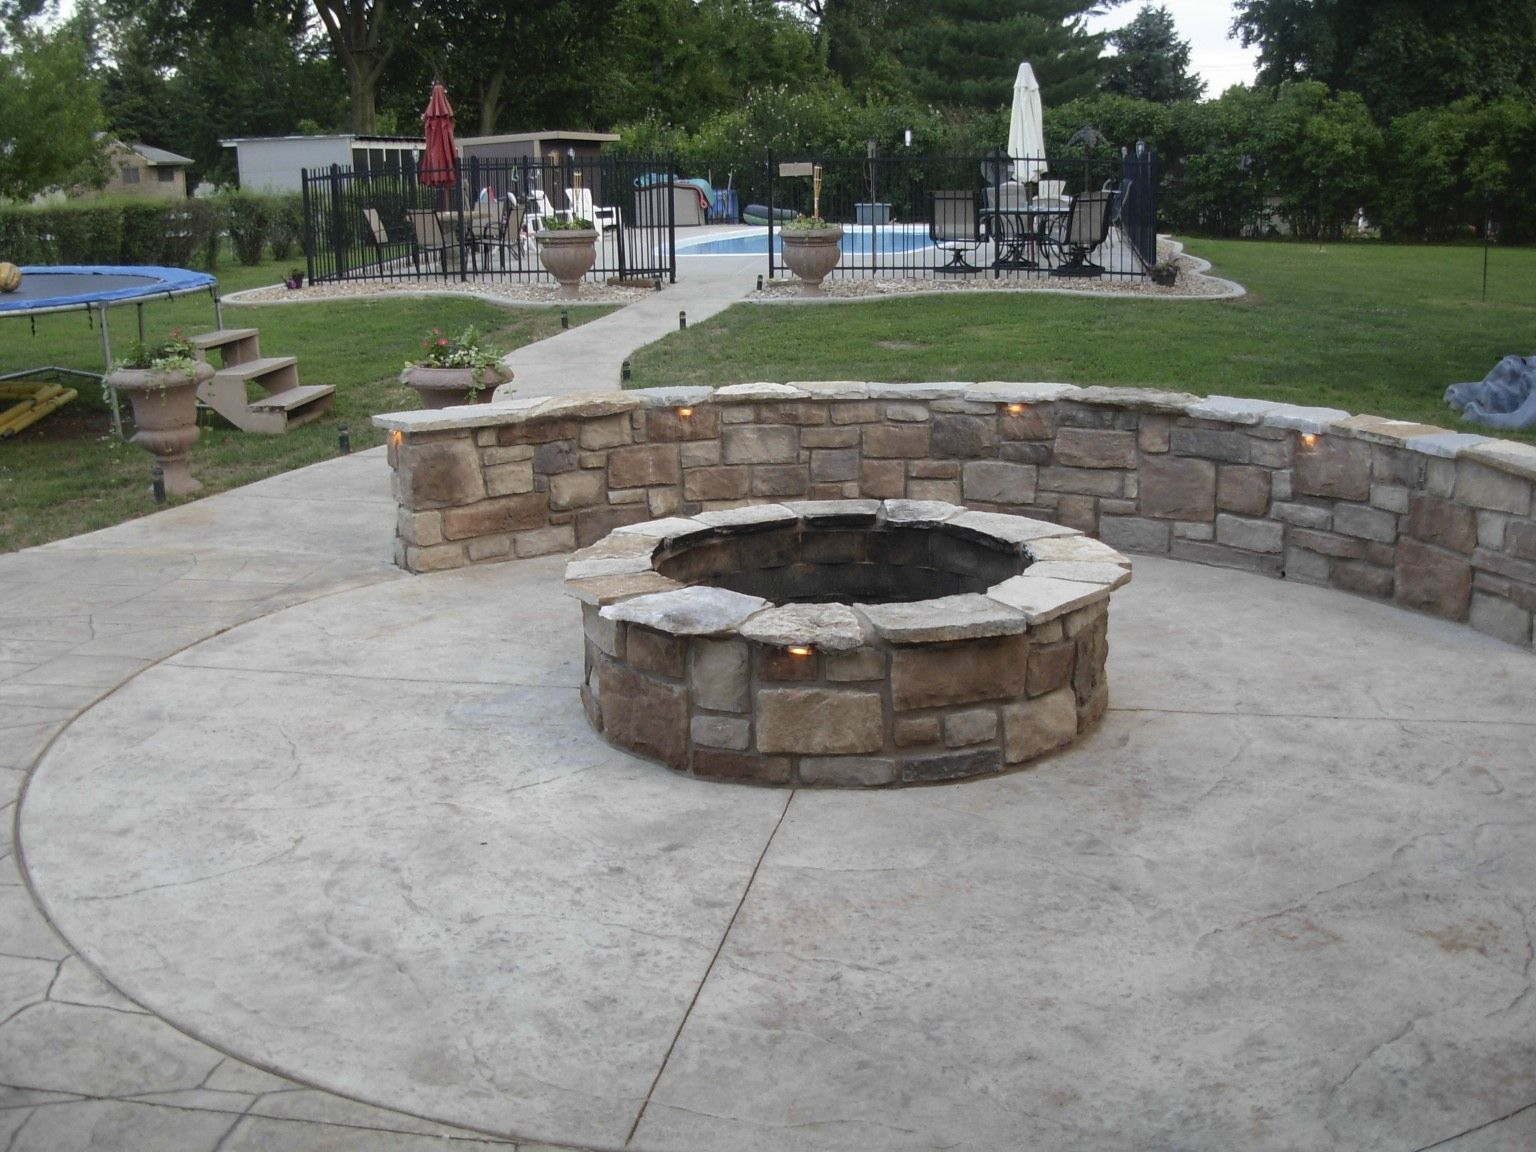 Concrete Patio With Fire Pits Pictures | Fire Pit U0026 Sitting Wall